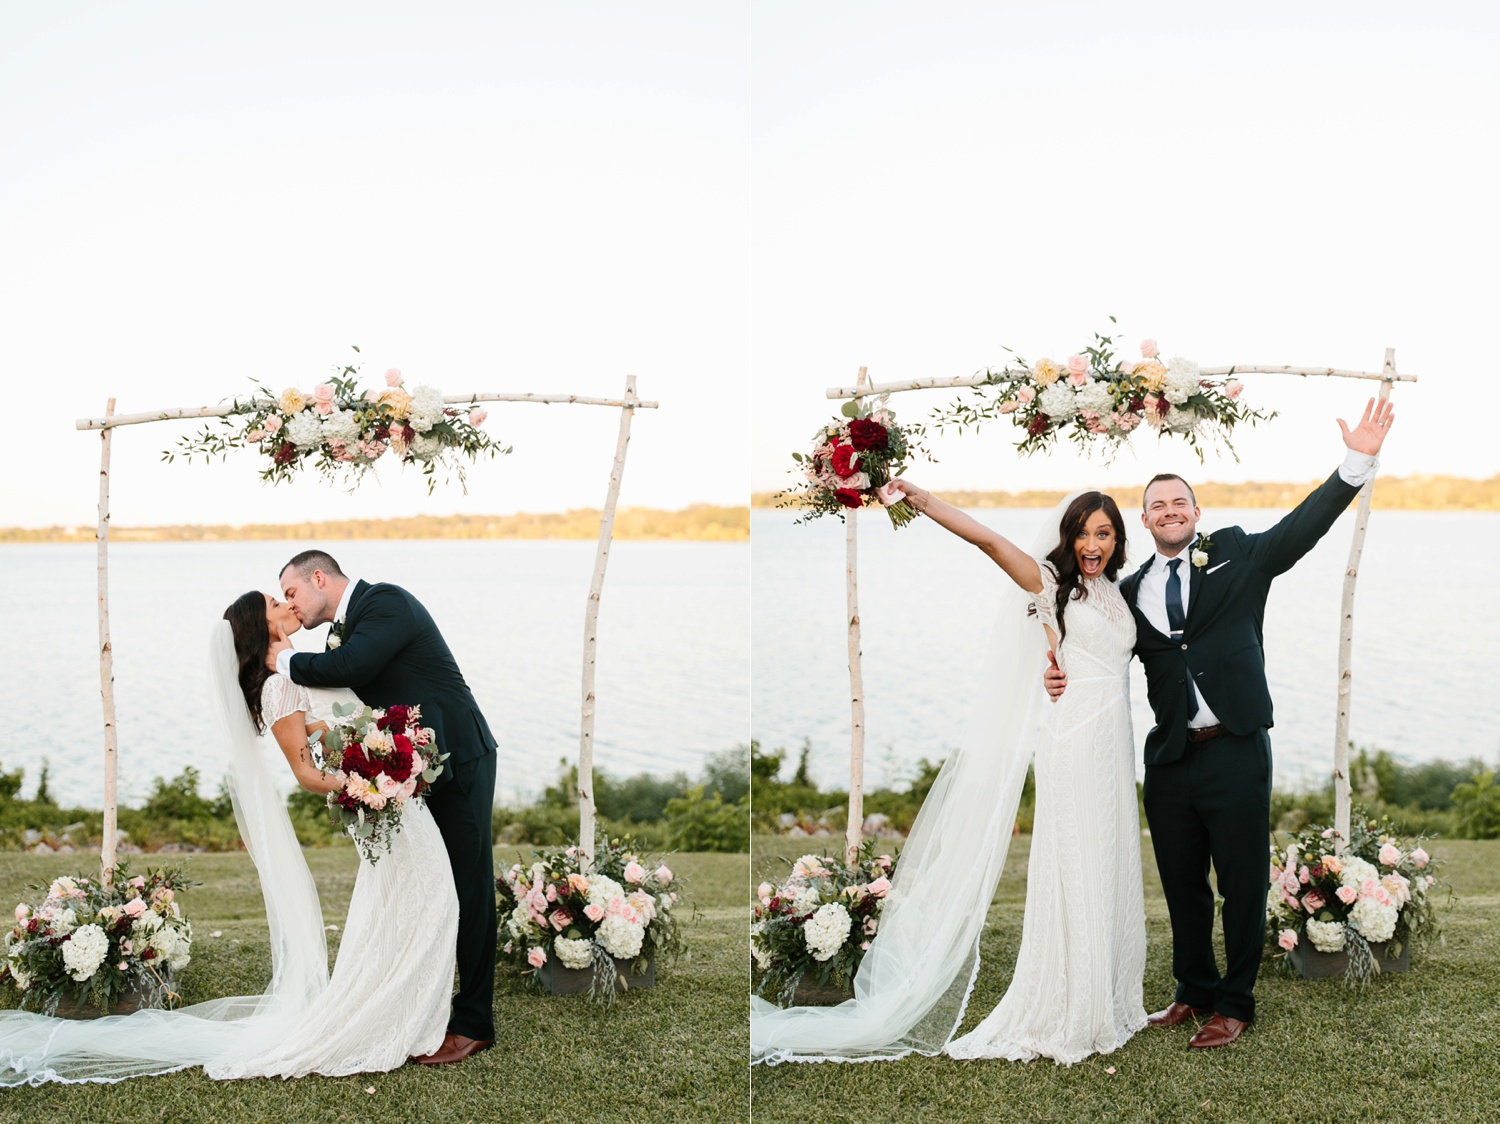 Kadee + Tyler | a raw, emotional wedding at the Filter Building on White Rock Lake in Dallas, TX by North Texas Wedding Photographer, Rachel Meagan Photography 153